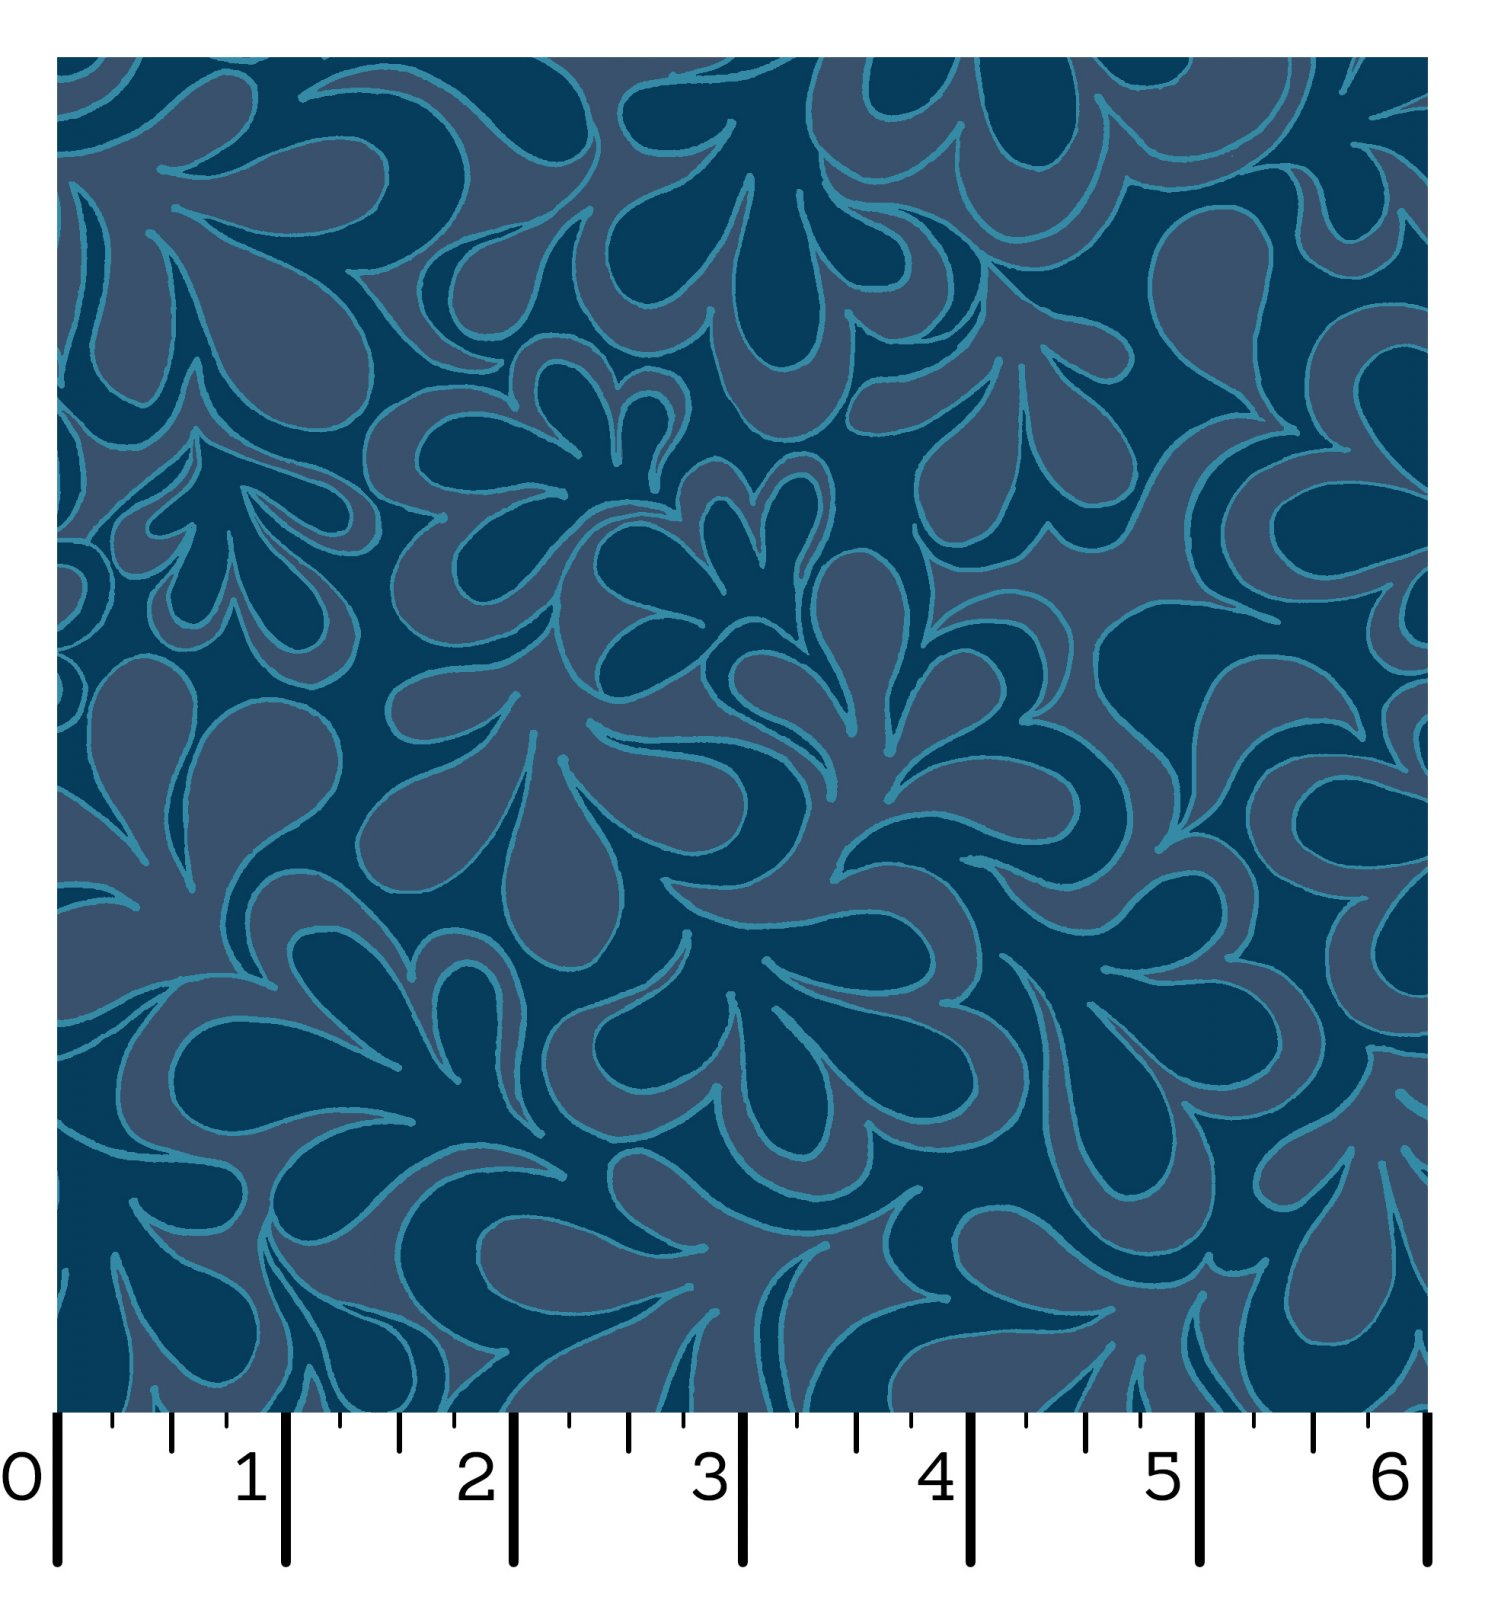 EESC-QBD10172 B - 108 INFINITY BACKINGS BY CHRISTINA CAMELI SUCCULENT BLUES - ARRIVING IN MARCH 2022